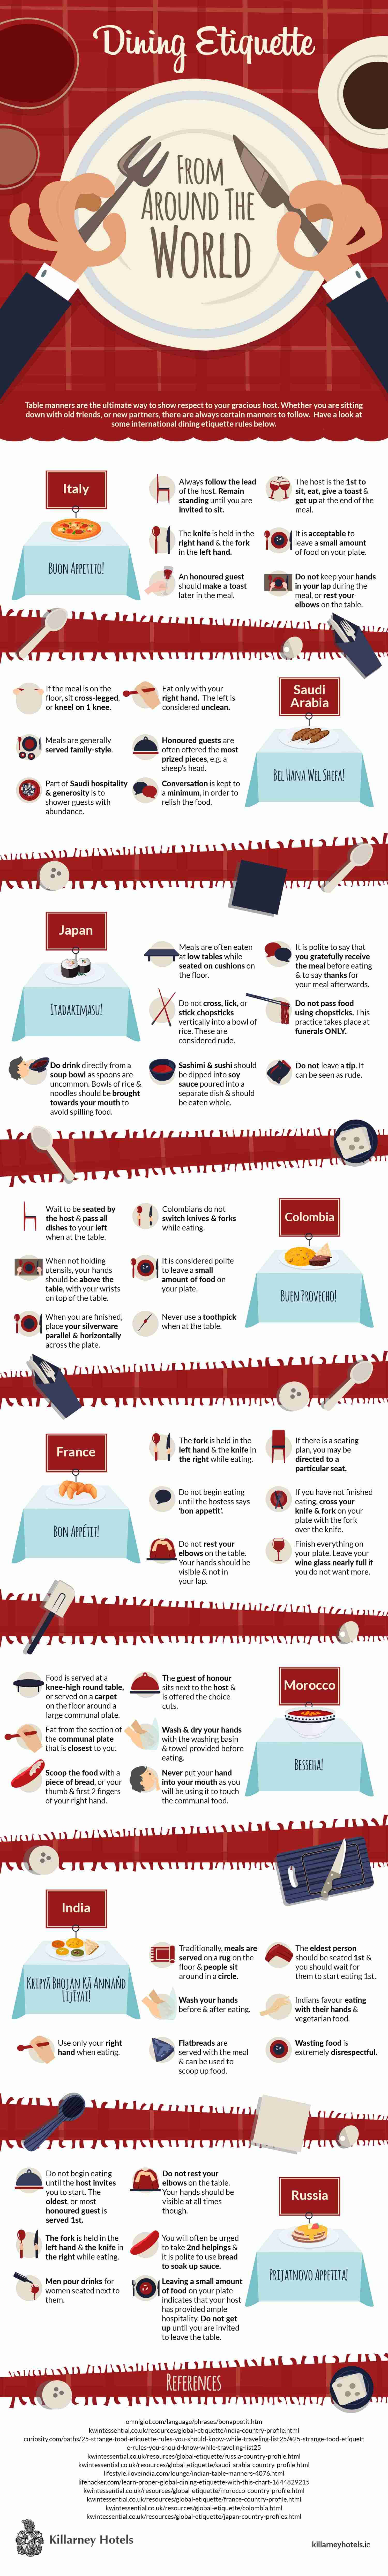 Dining Etiquette Around the World IG - Larger Size